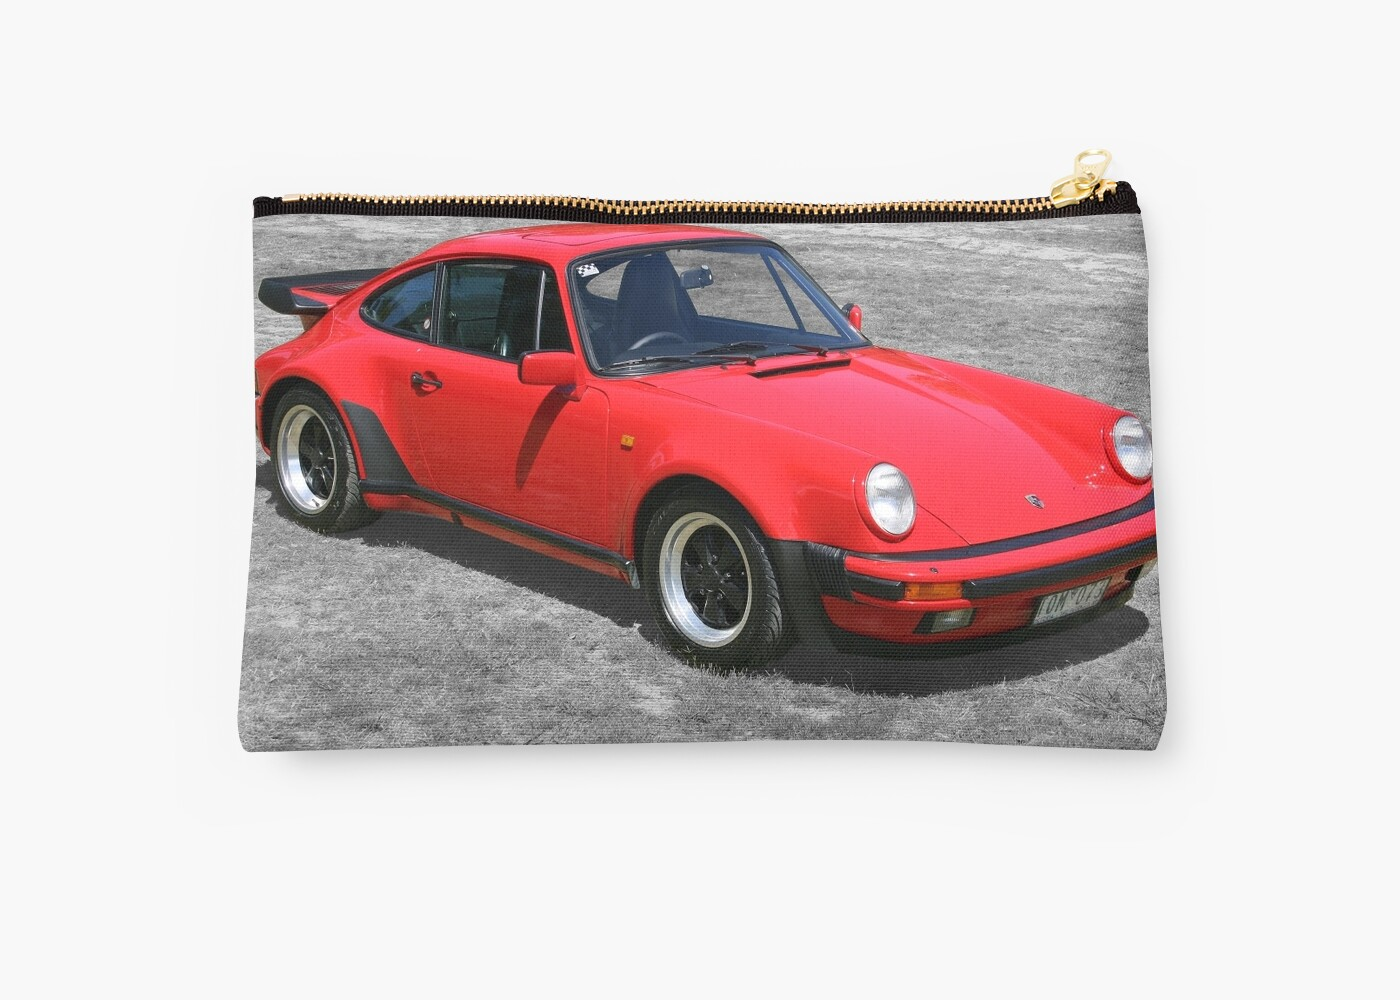 1985 porsche 911 turboporsche 930 studio pouches by tonyshaw 1985 porsche 911 turboporsche 930 by tonyshaw vanachro Image collections